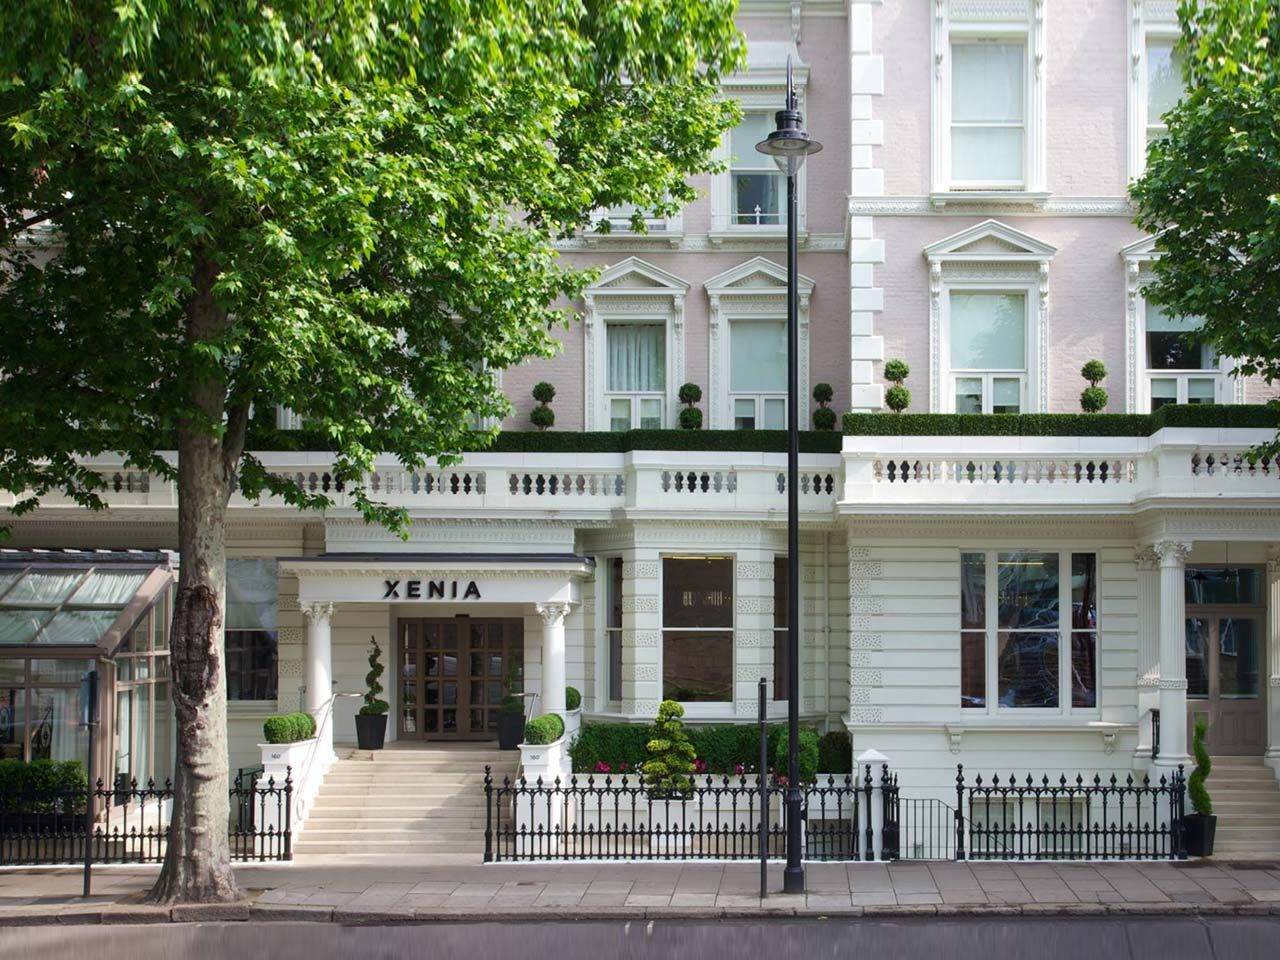 Hotel Xenia London In South Kensington Small Boutique Hotel With Charm London Hotels Xenia Hotel Boutique Hotels London